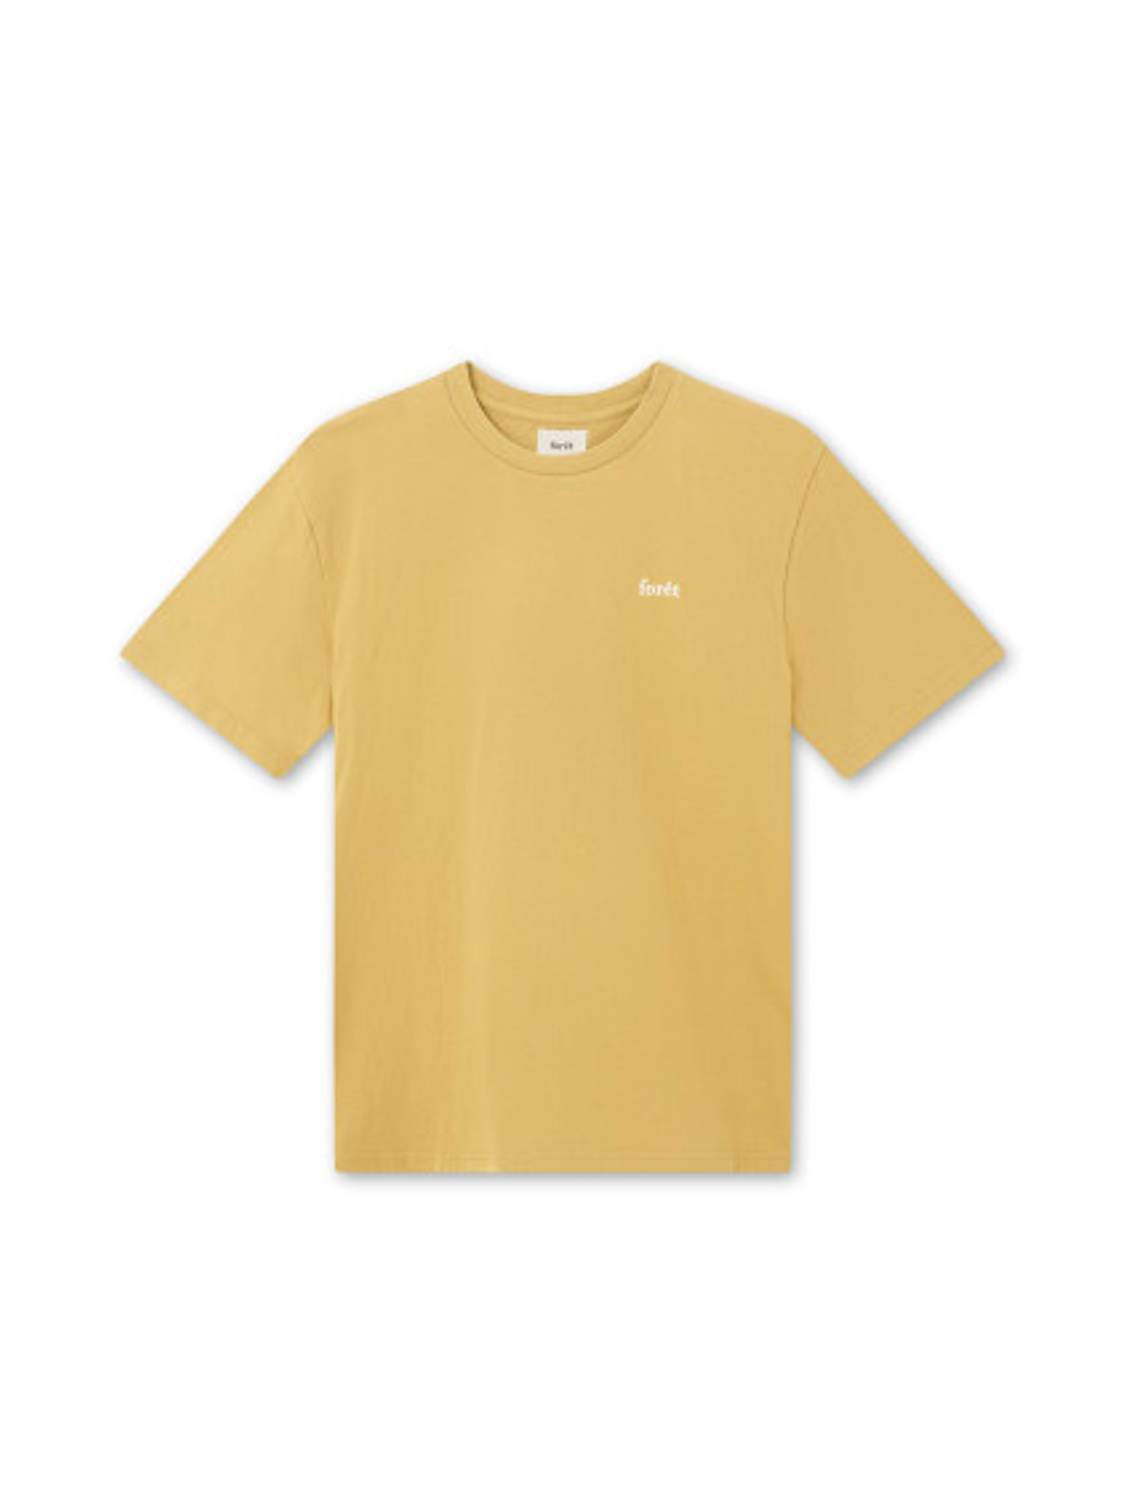 FORÉT - Air T-Shirt Ochre | GATE 36 Hobro